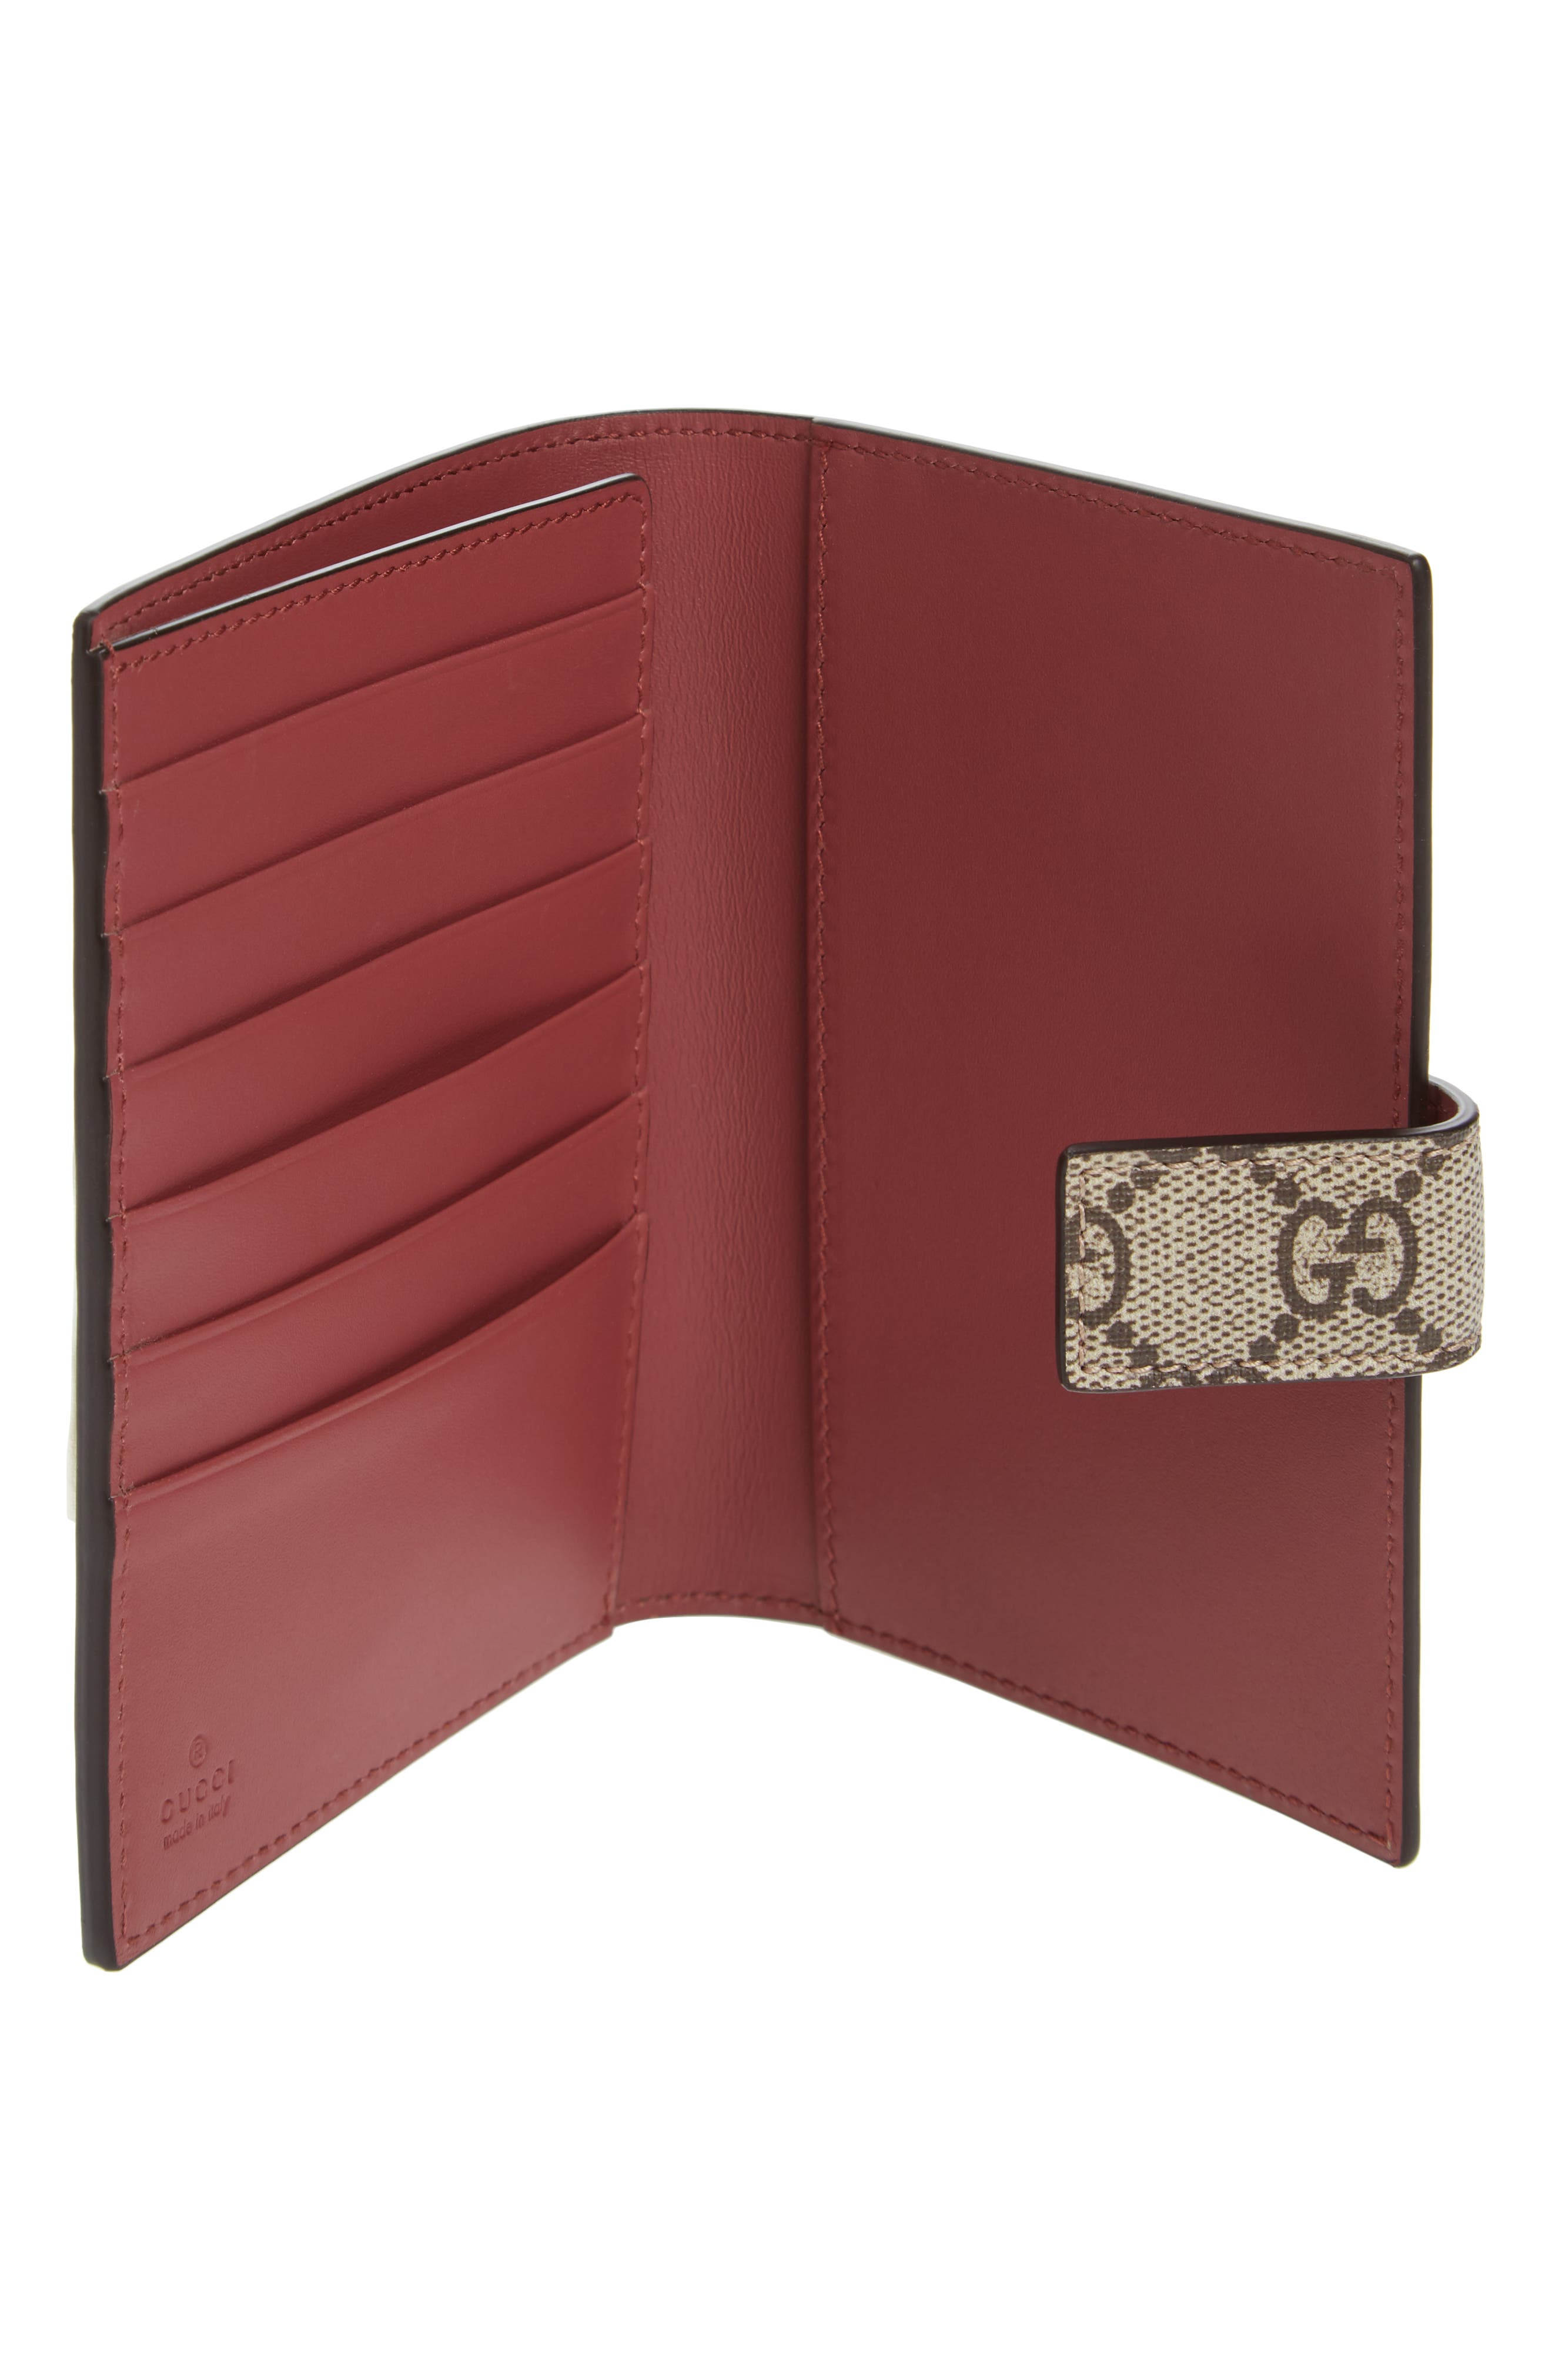 Blooms GG Canvas Passport Case,                             Alternate thumbnail 2, color,                             Beige Ebony/Dry Rose